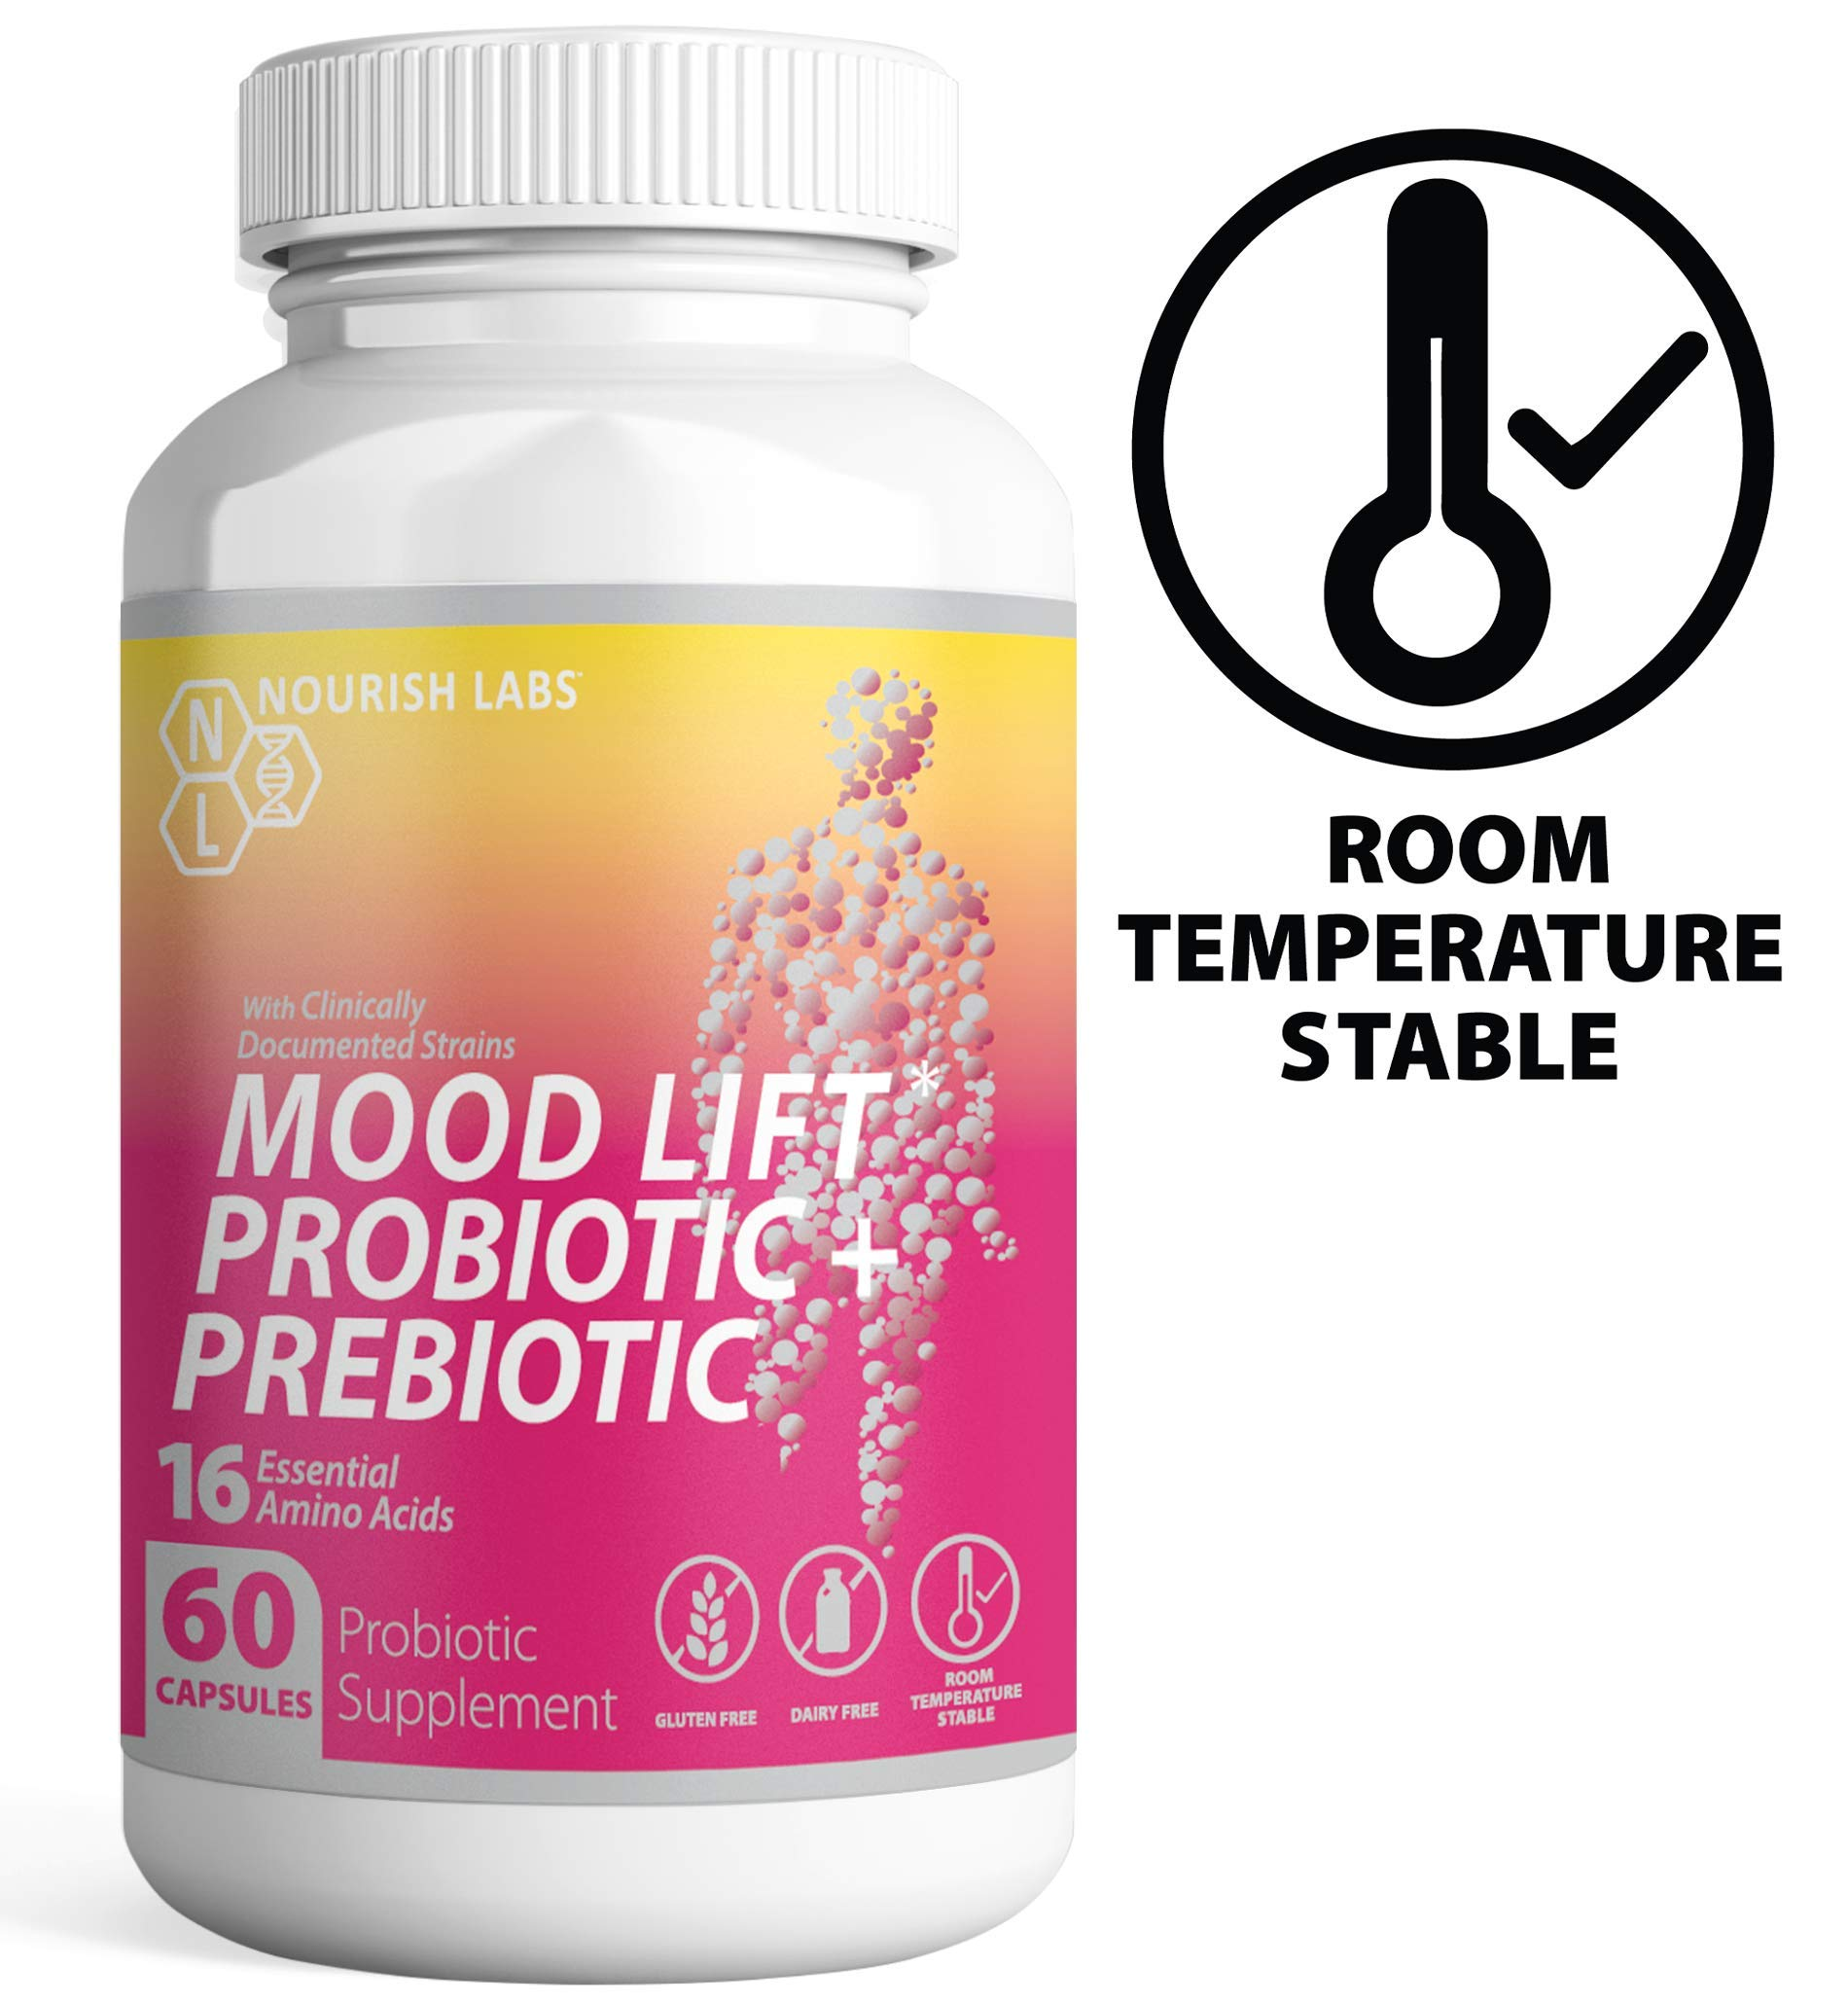 Nourish Labs Organic Prebiotics and Probiotics for Women. Clinically Proven Mood Boosting Dual Action Probiotics with Prebiotics and Cranberry. No Refrigeration Needed. by Nourish Labs